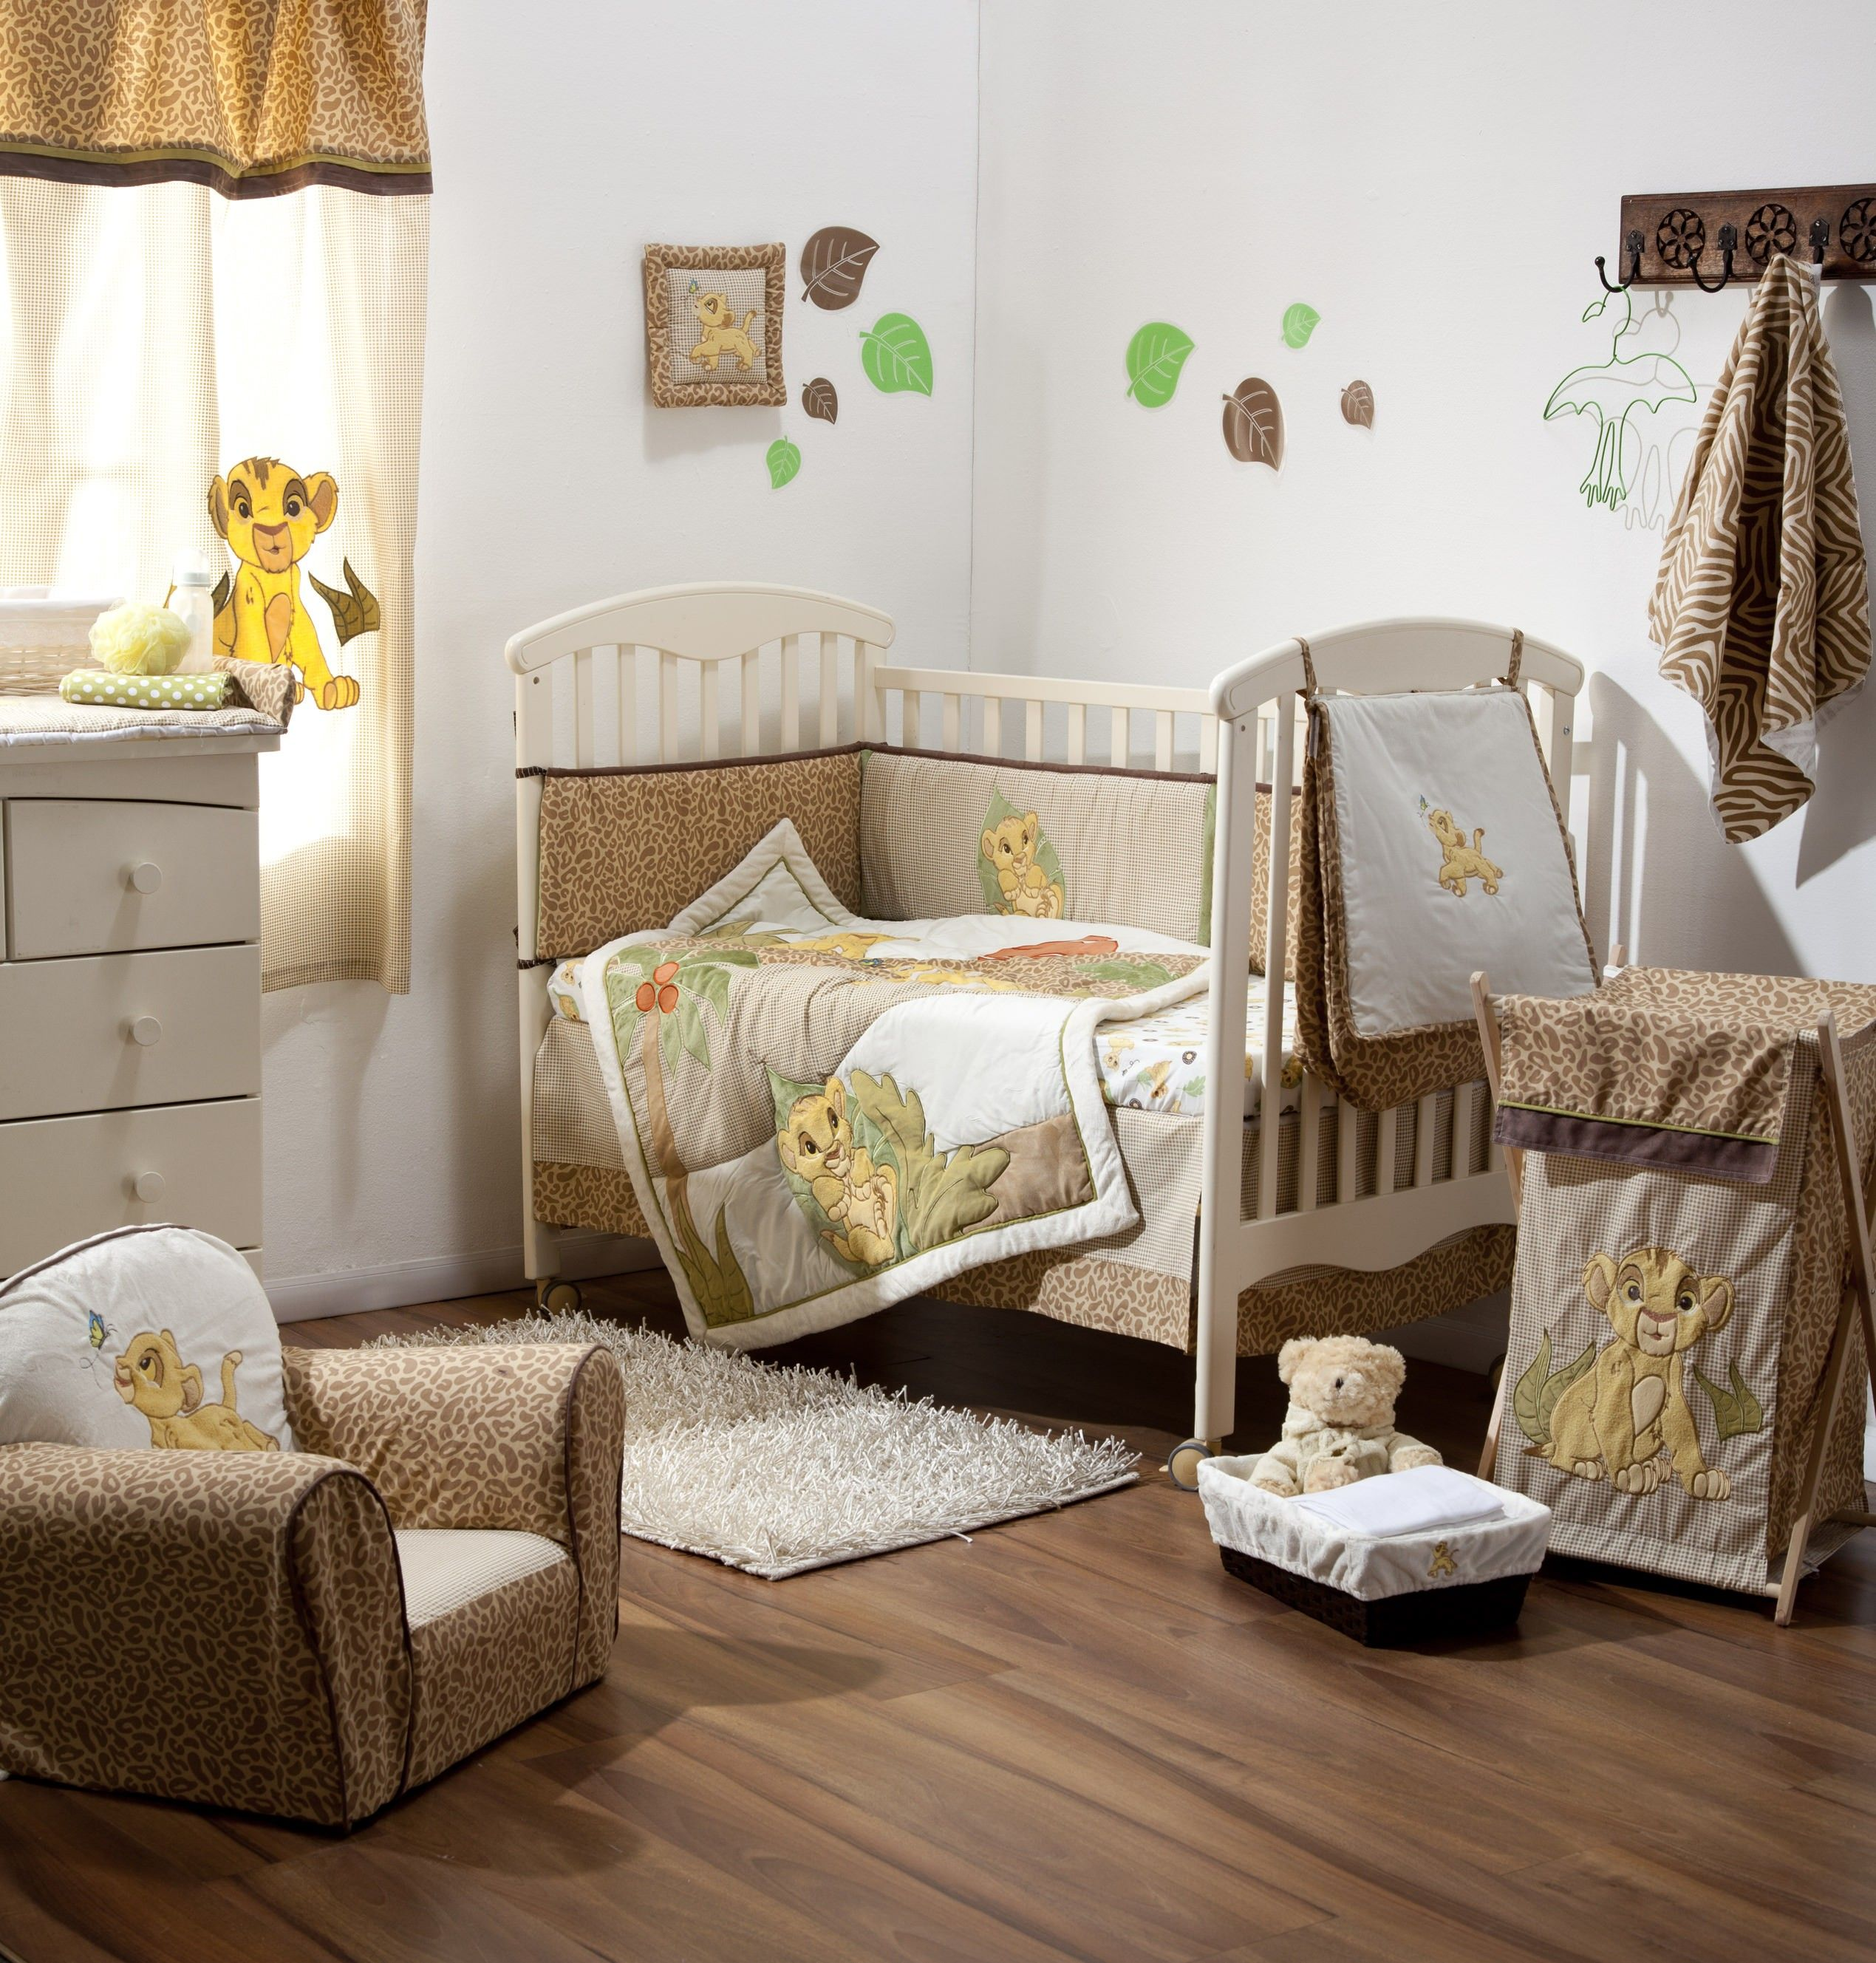 17 Best images about Unisex Crib Bedding on Pinterest   Disney  Disney lion  king and Quilt. 17 Best images about Unisex Crib Bedding on Pinterest   Disney